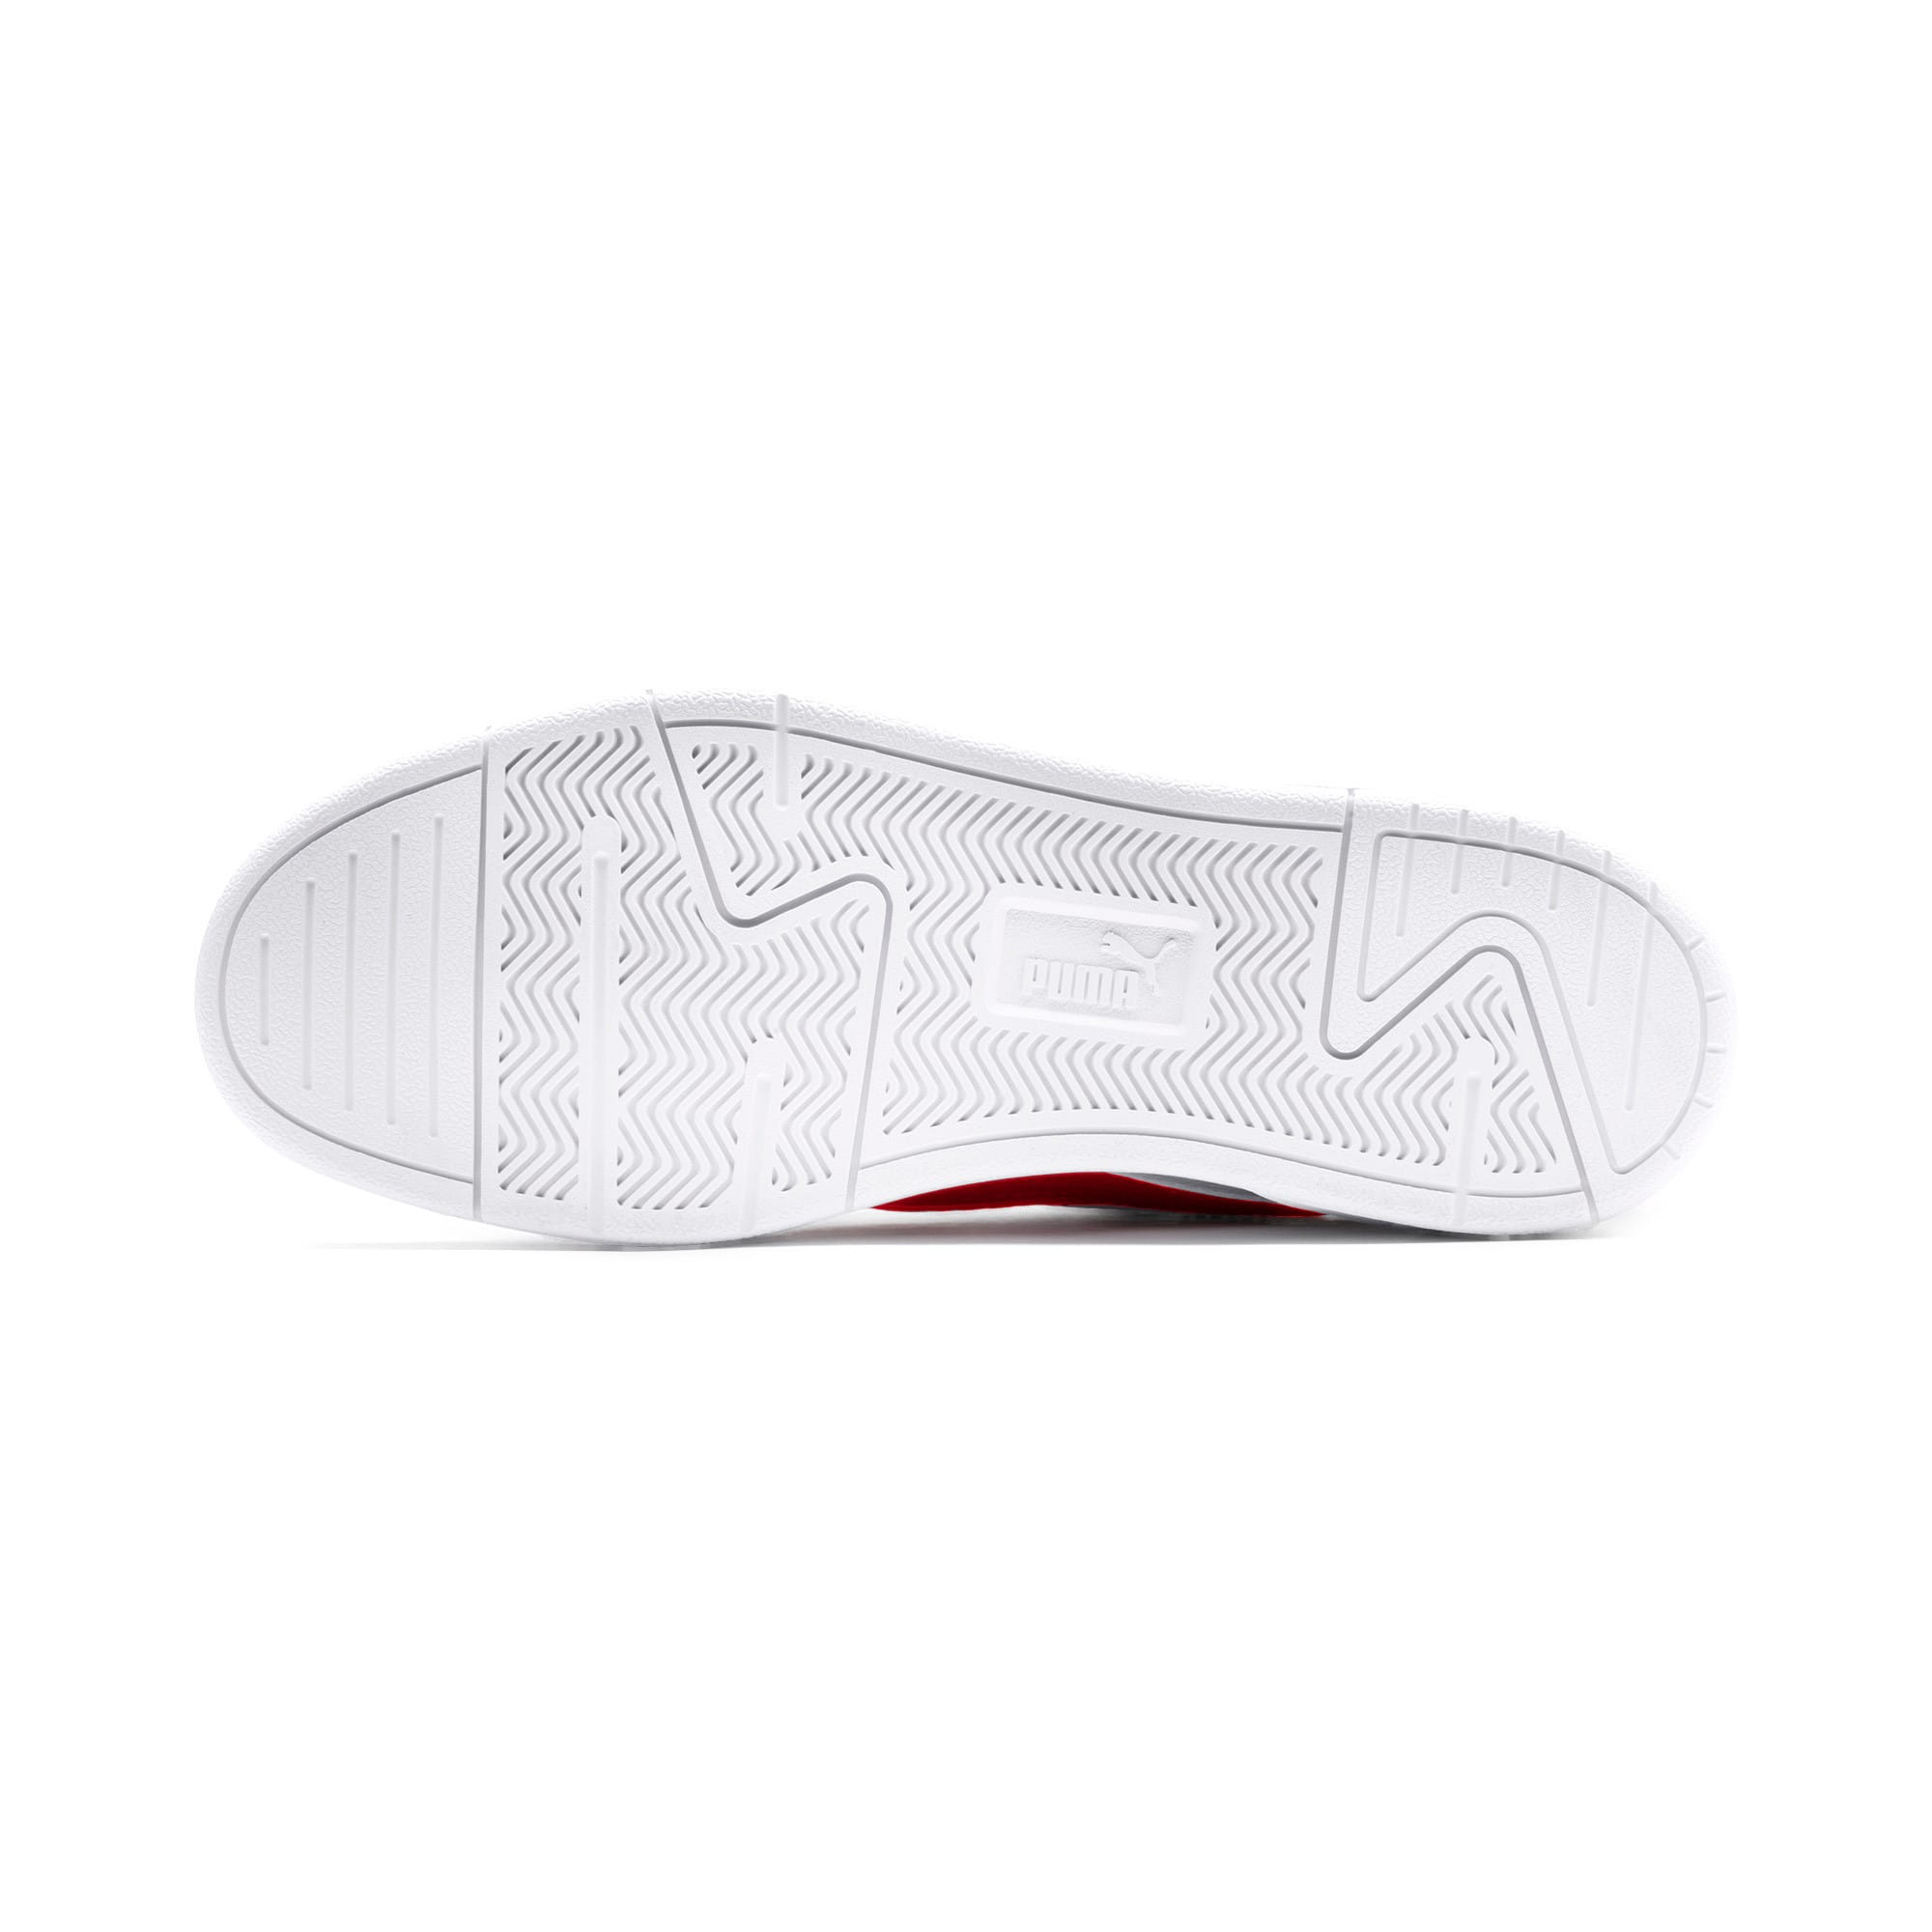 Thumbnail 6 of Red Bull Racing Caracal Trainers, Puma White-Chinese Red-White, medium-IND